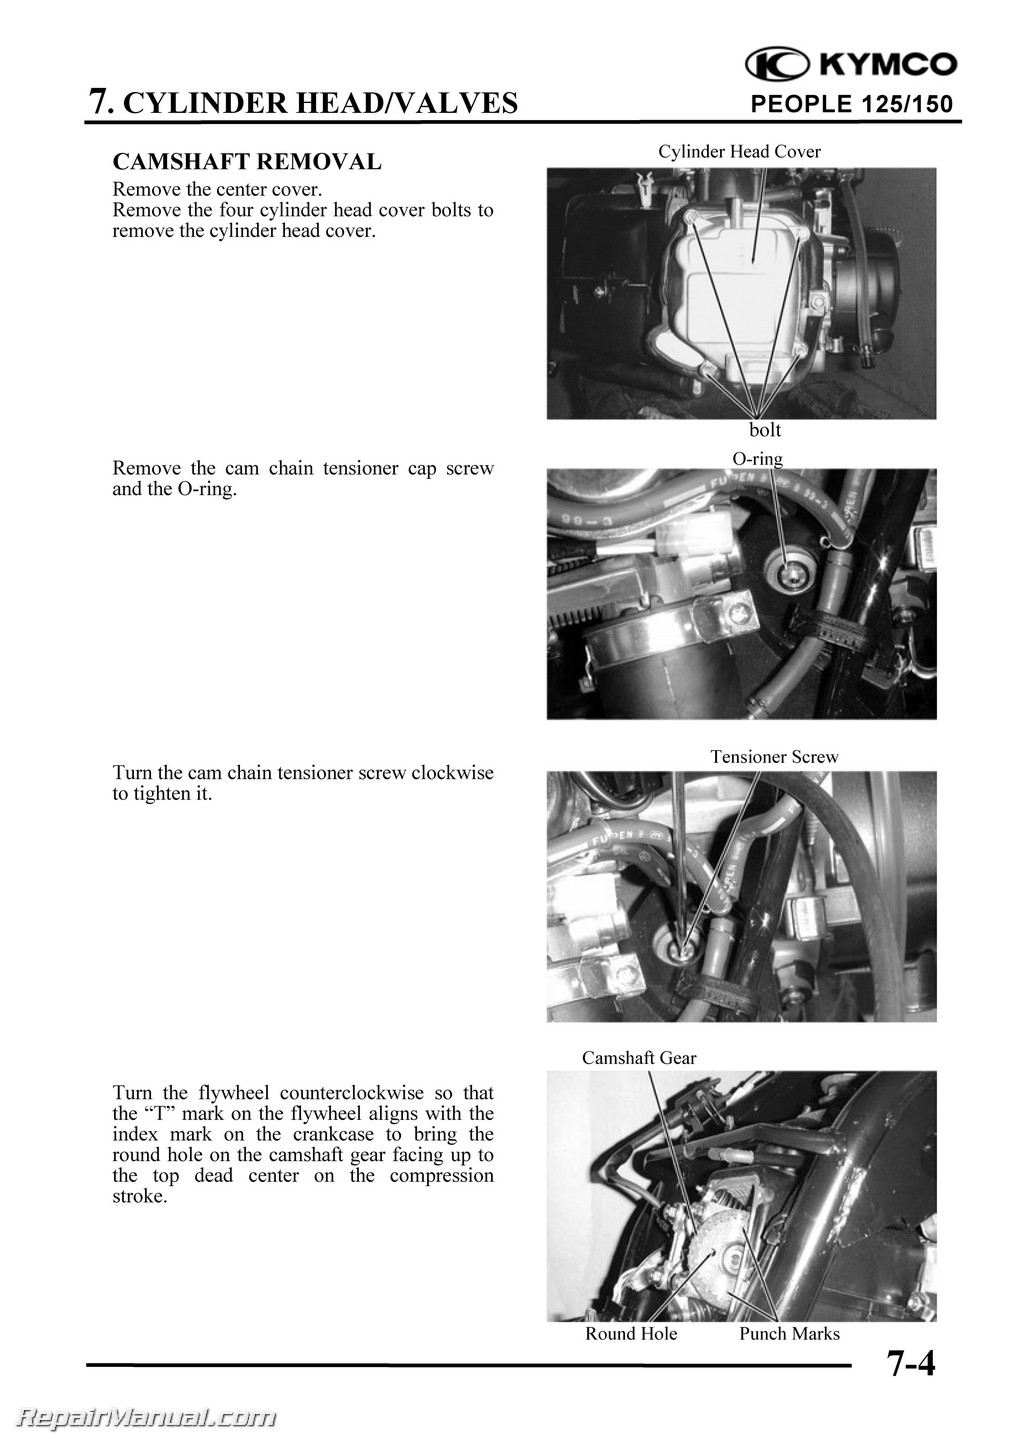 Kymco People 125 150 Cyclepedia Printed Scooter Service Manual border=